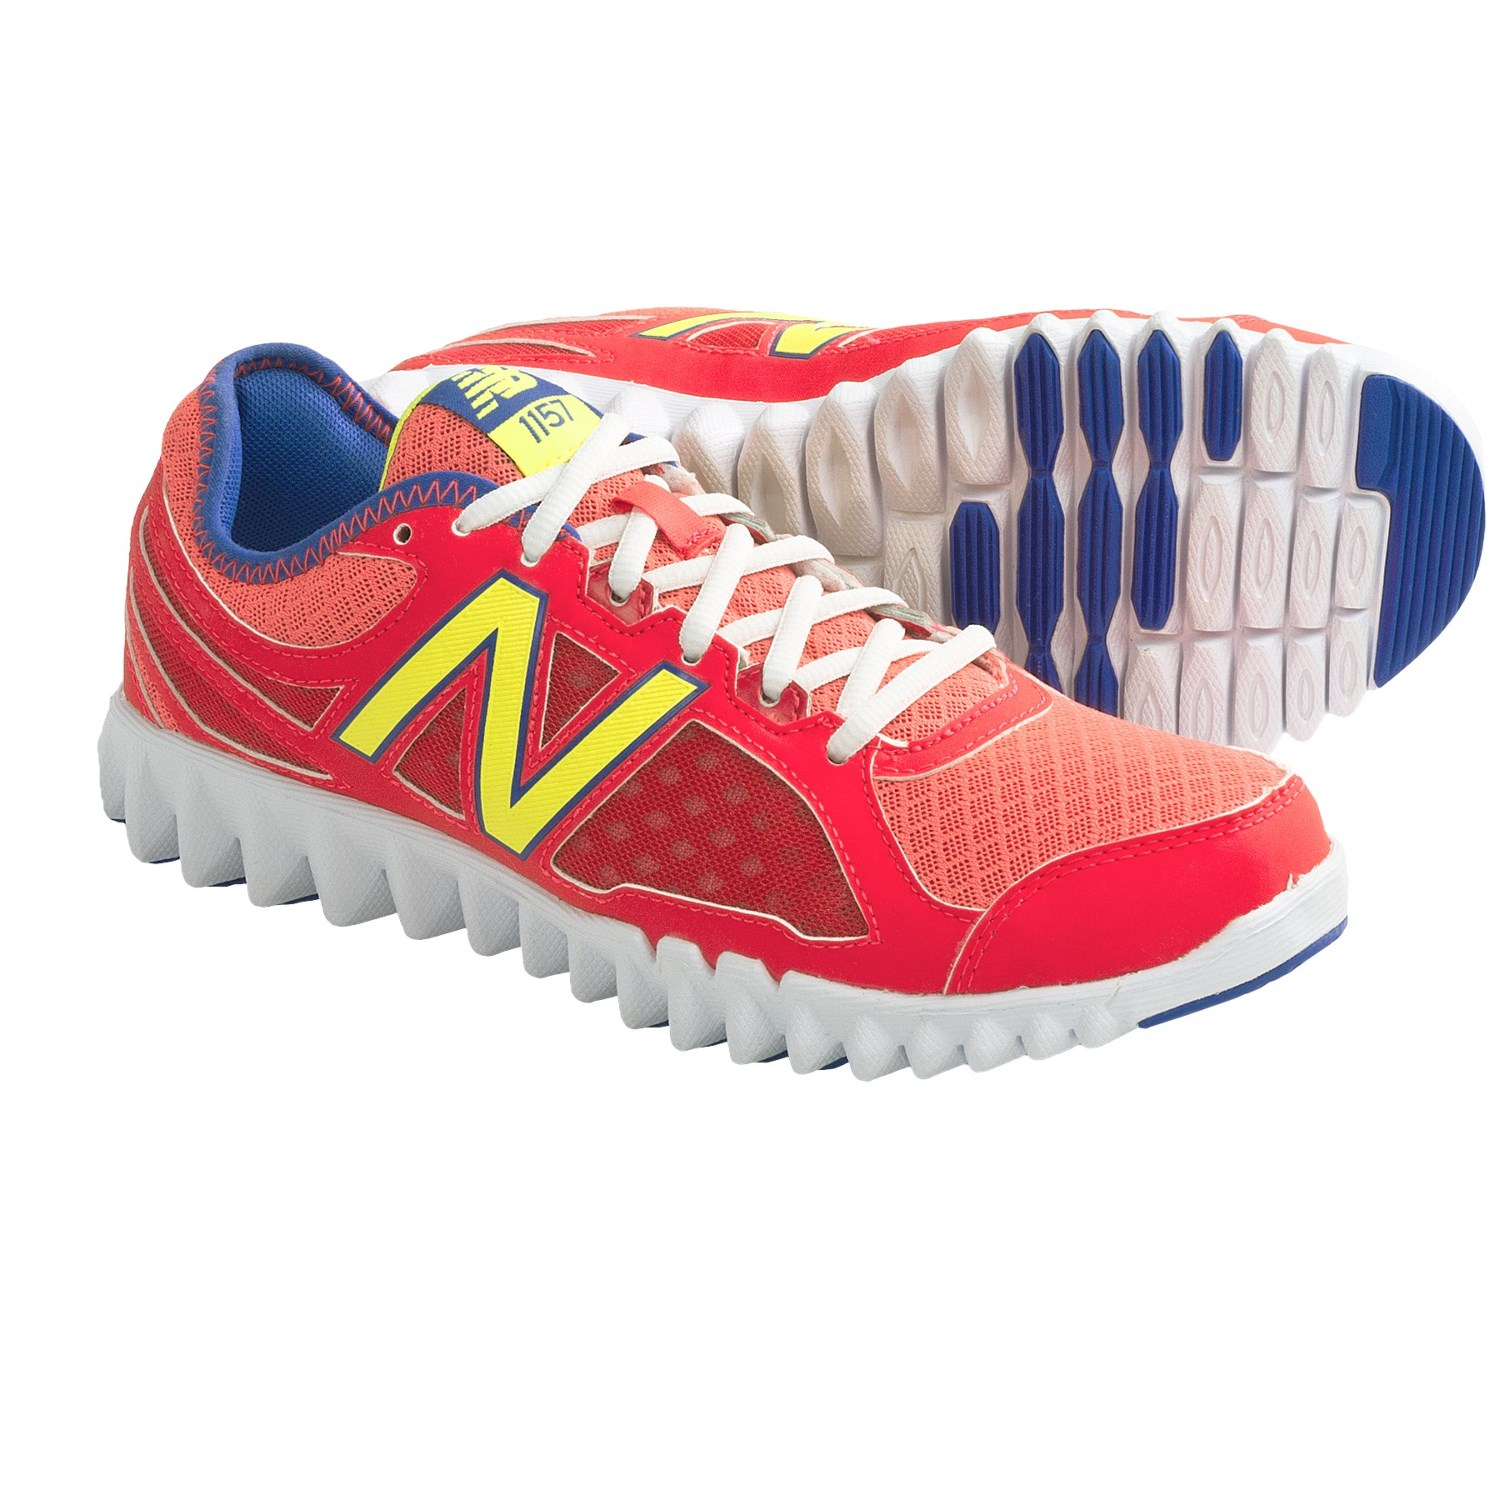 New Balance WX1157 Training Shoes (For Women) - Save 28